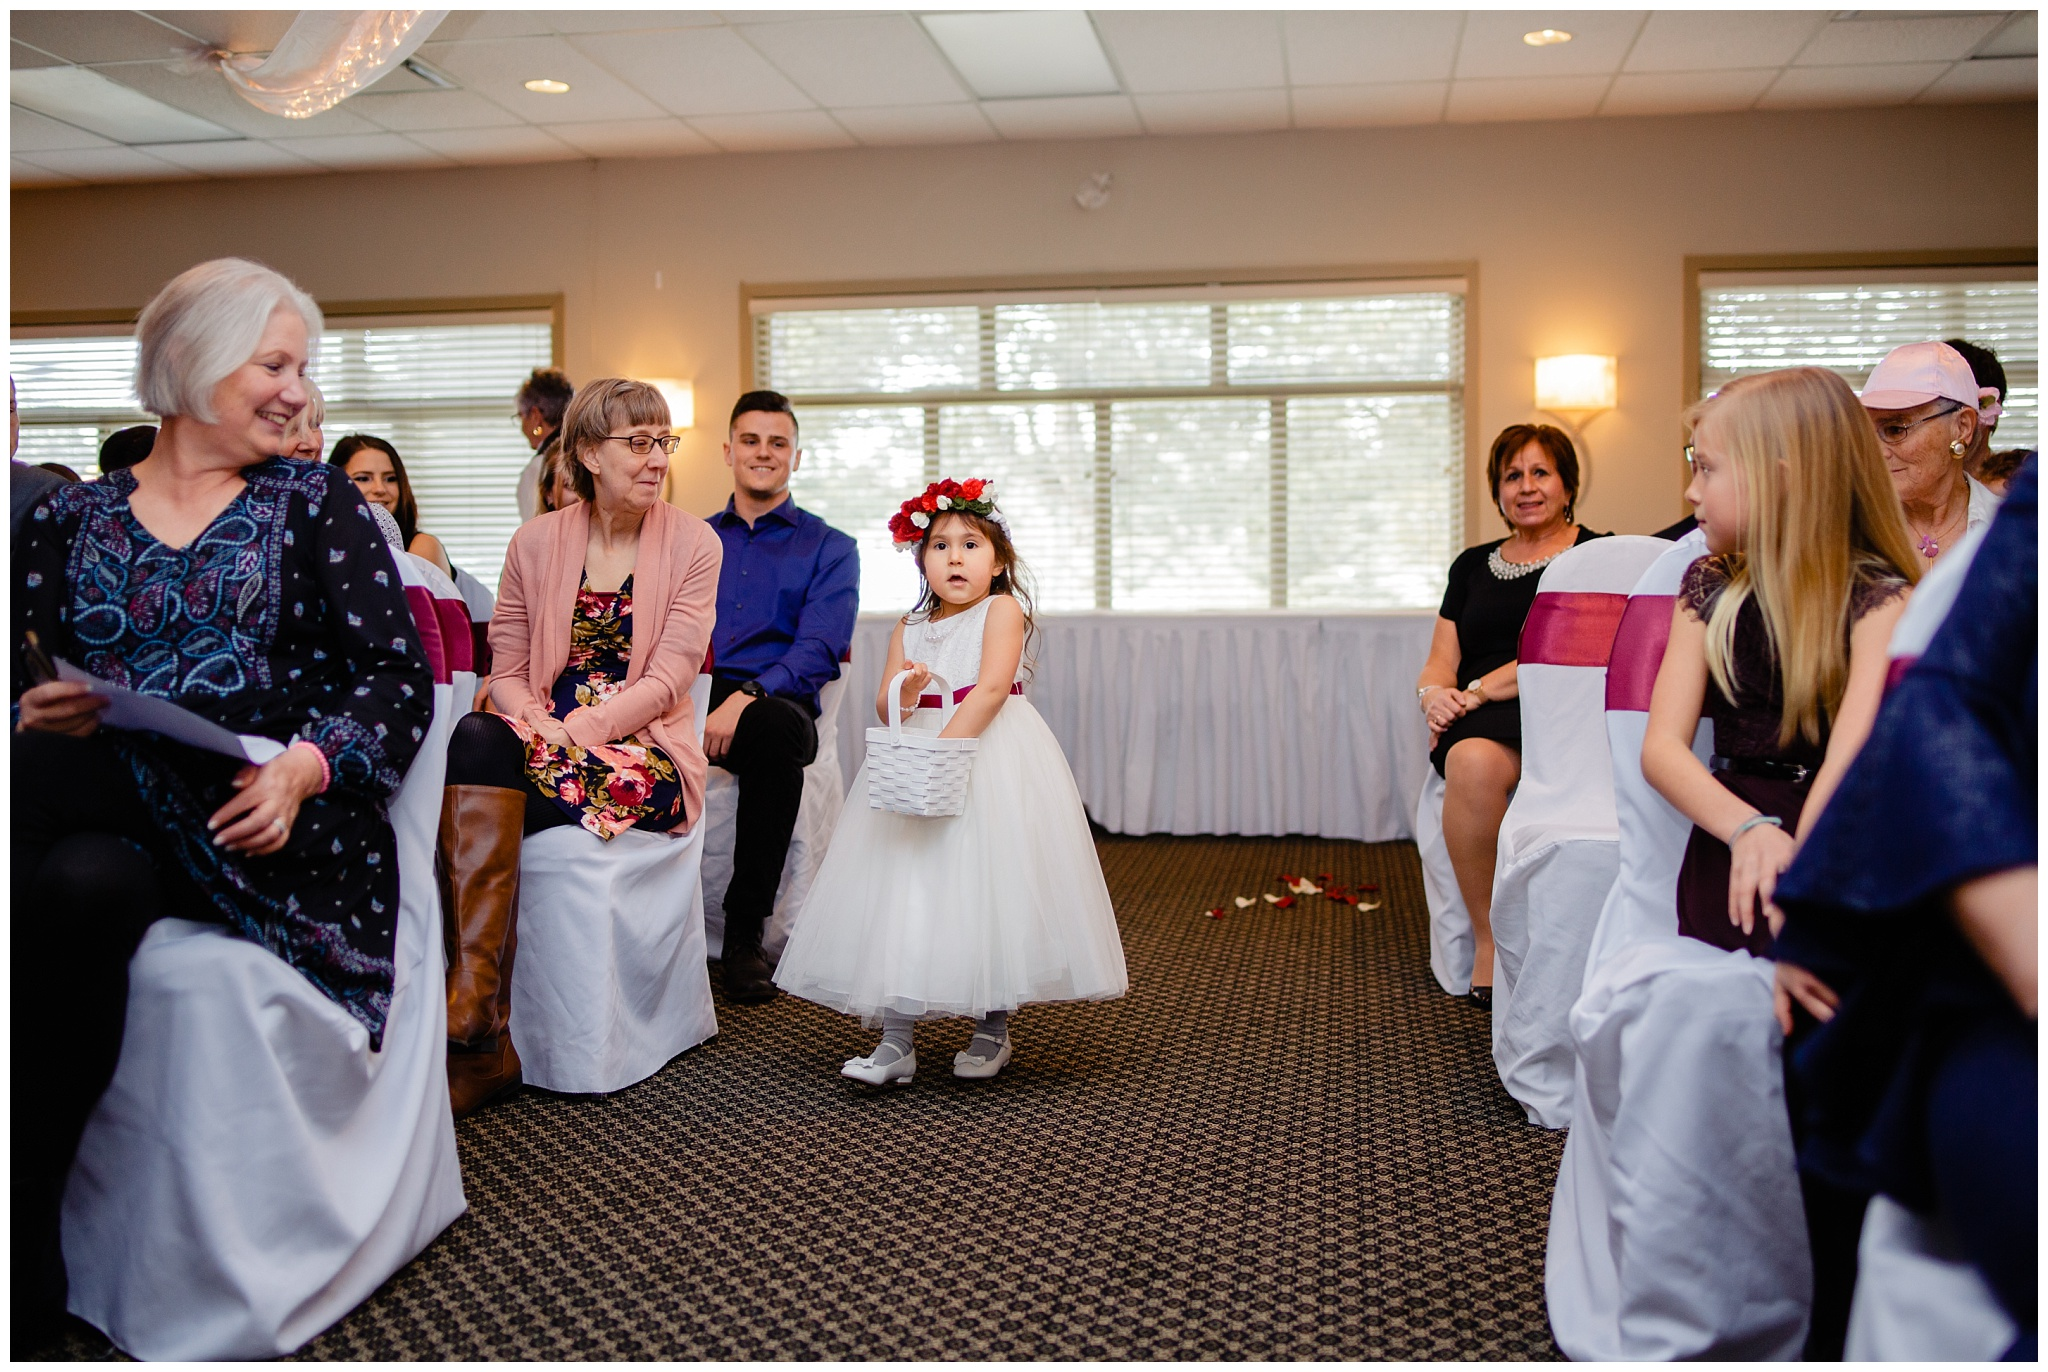 White Rock Intimate Wedding 5 Star Catering Venue Surrey BC Middle Aged Couple_0004.jpg